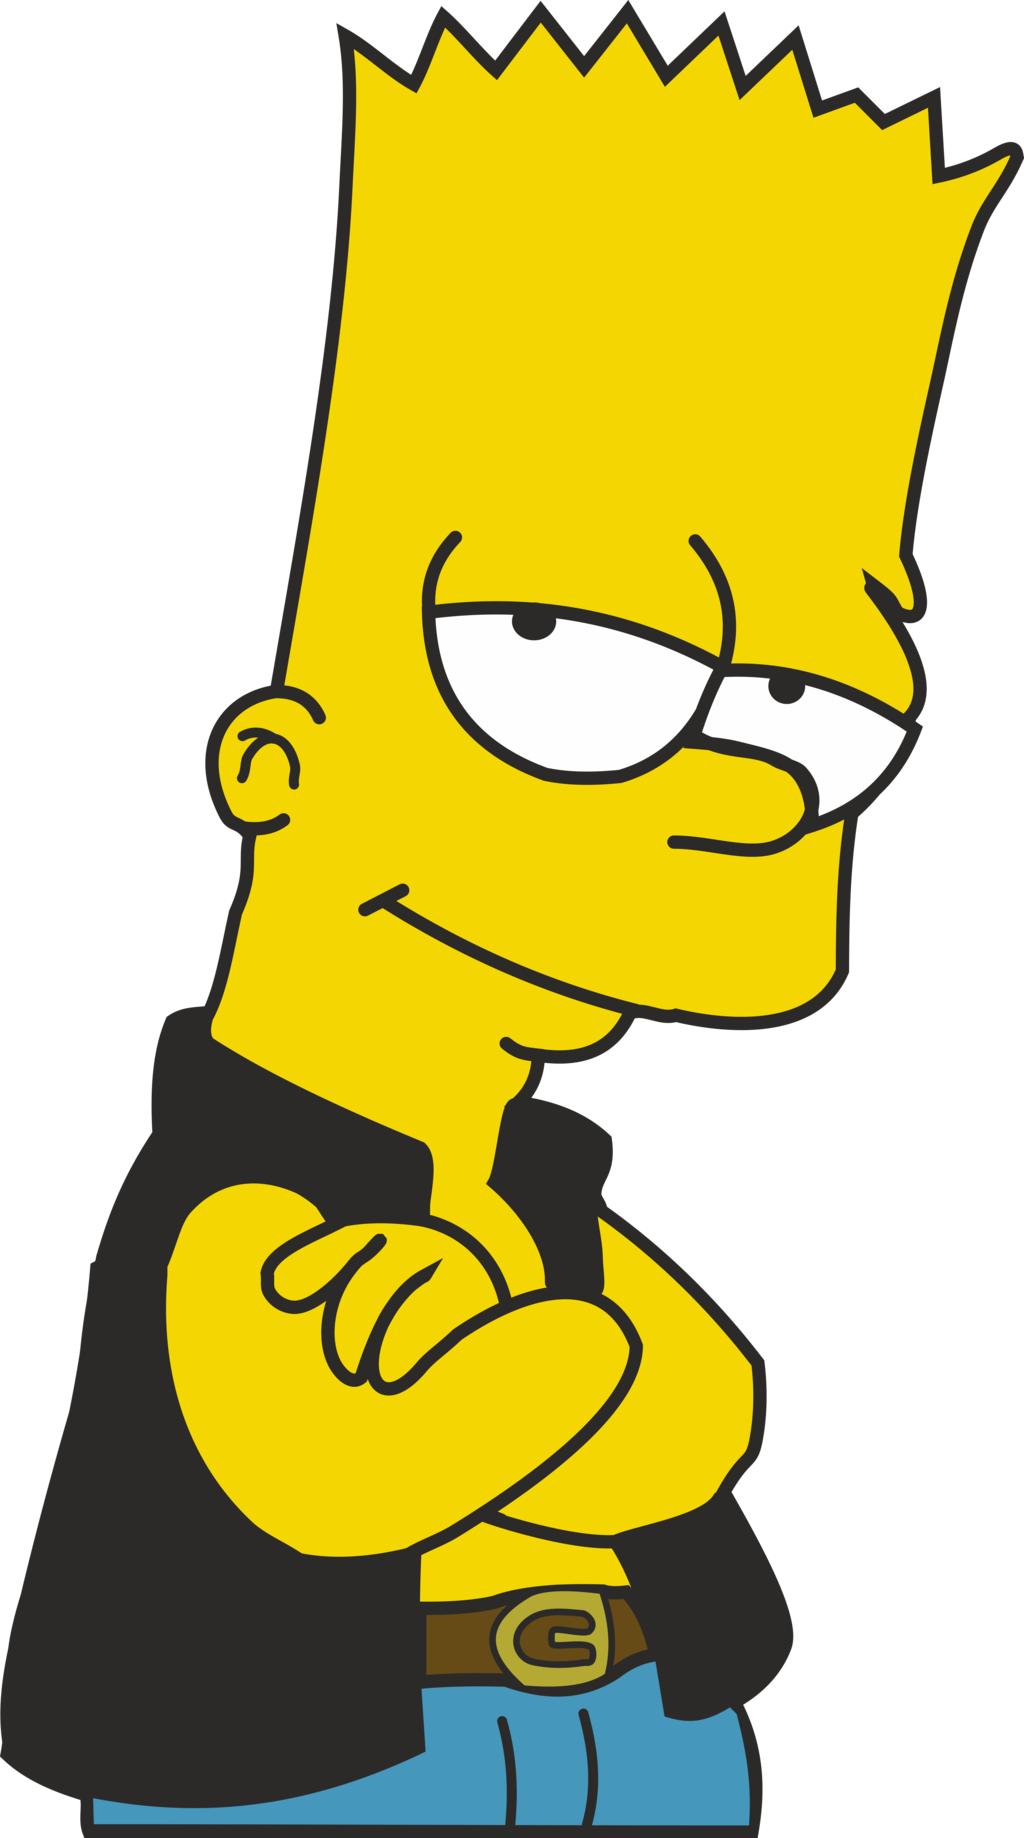 Bart simpson png pictures. Simpsons transparent camera graphic library